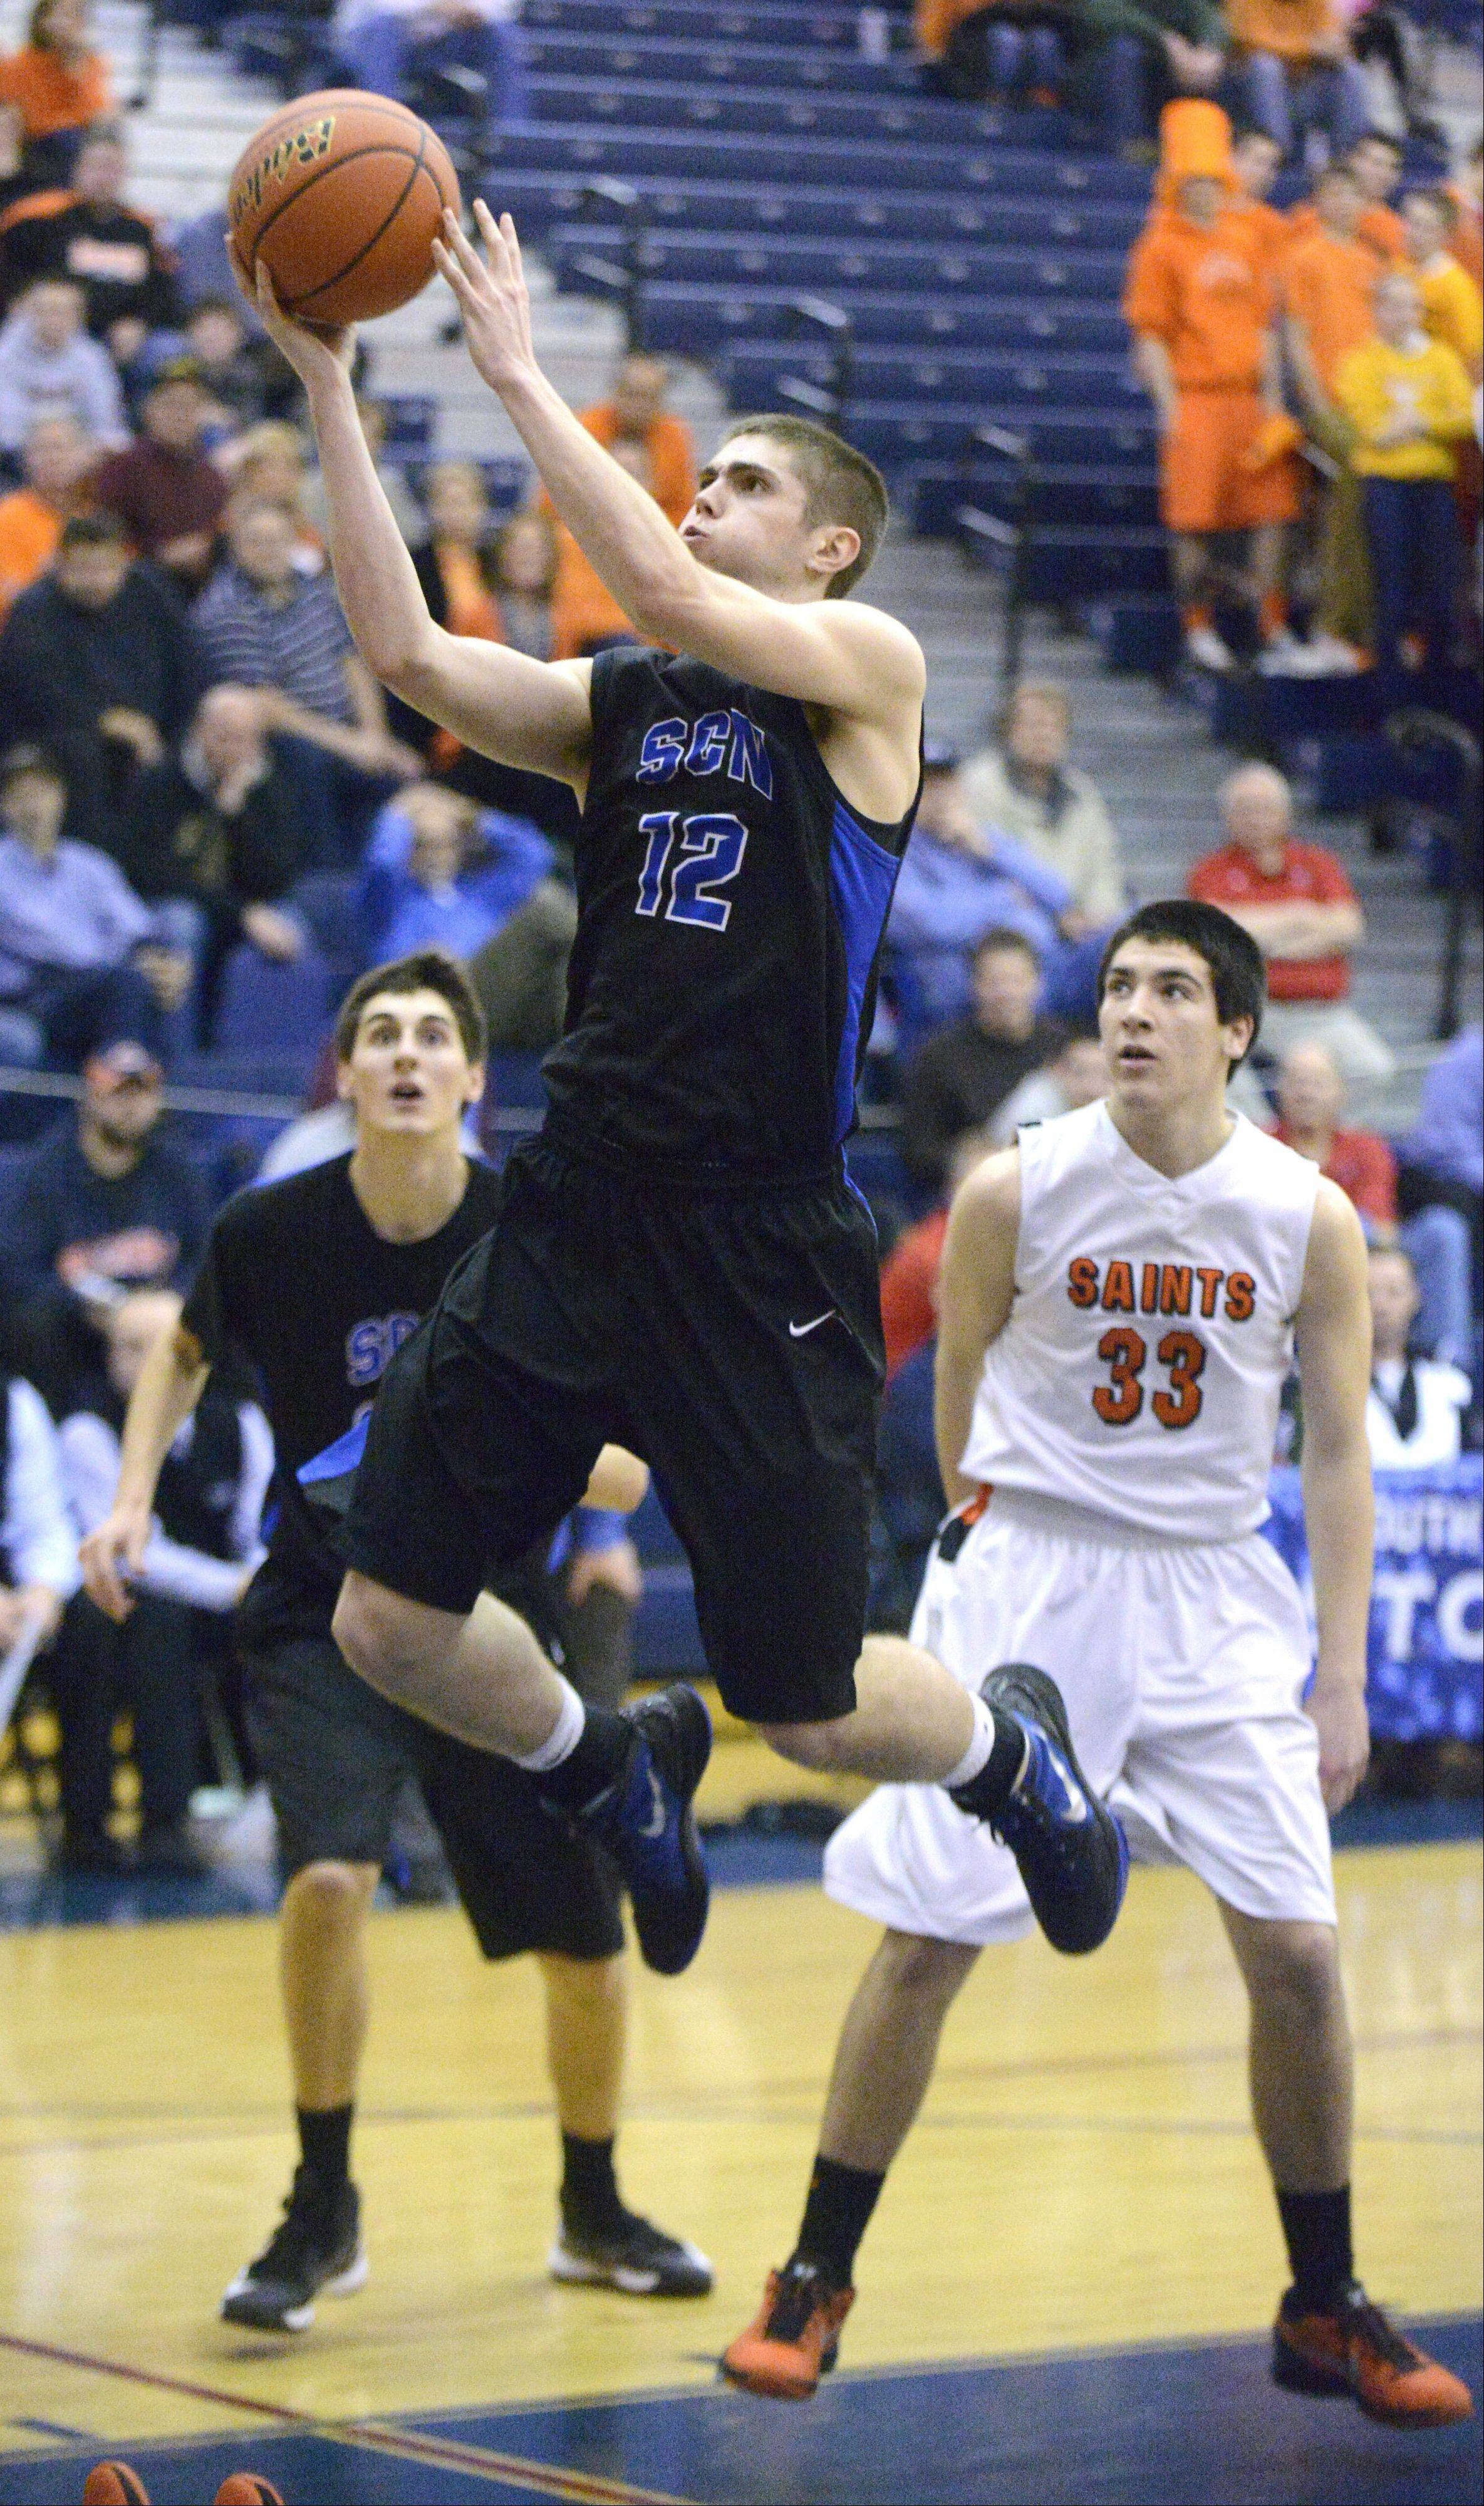 St. Charles North's Quinten Payne soars to the hoop past St. Charles East's Jake Asquini in the fourth quarter.